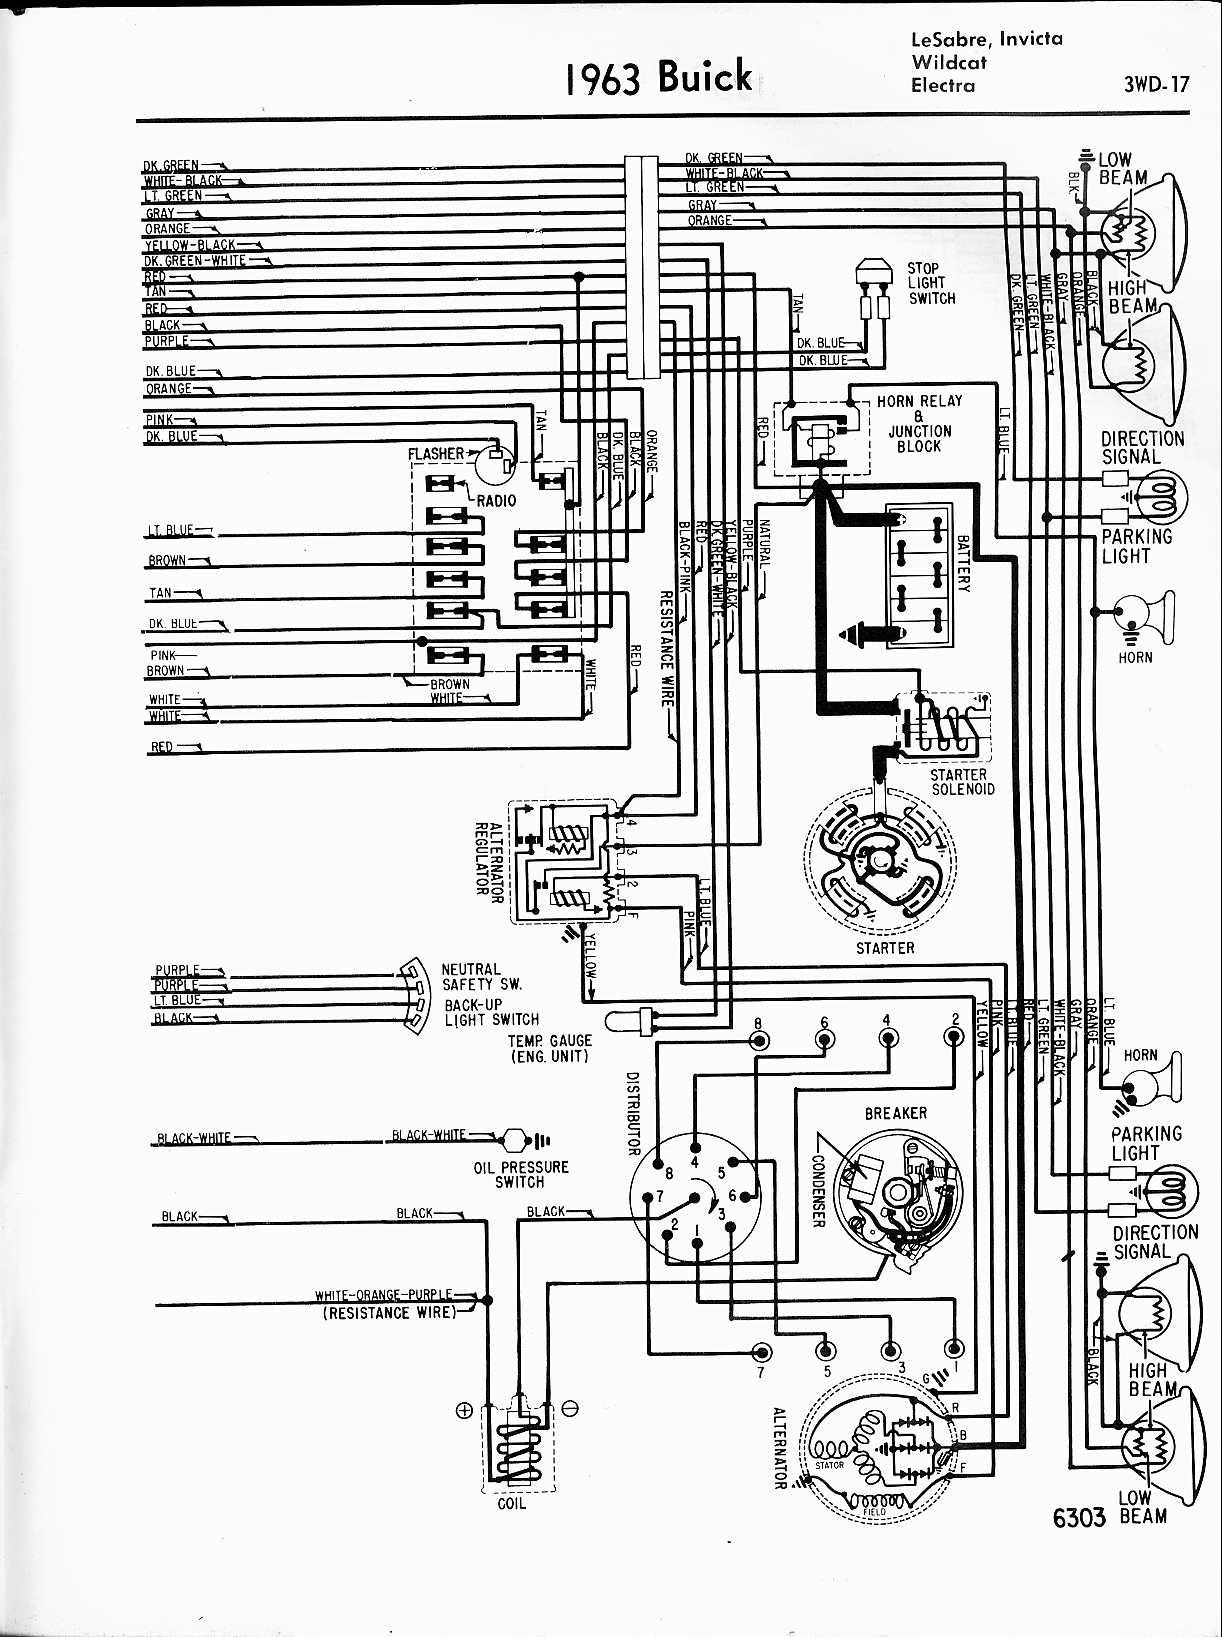 Wildcat Wiring Diagram Schema Diagrams Electrical Box Google Patents On Outdoor Buick 1957 1965 King Quad 1963 Lesabre Lnvicta